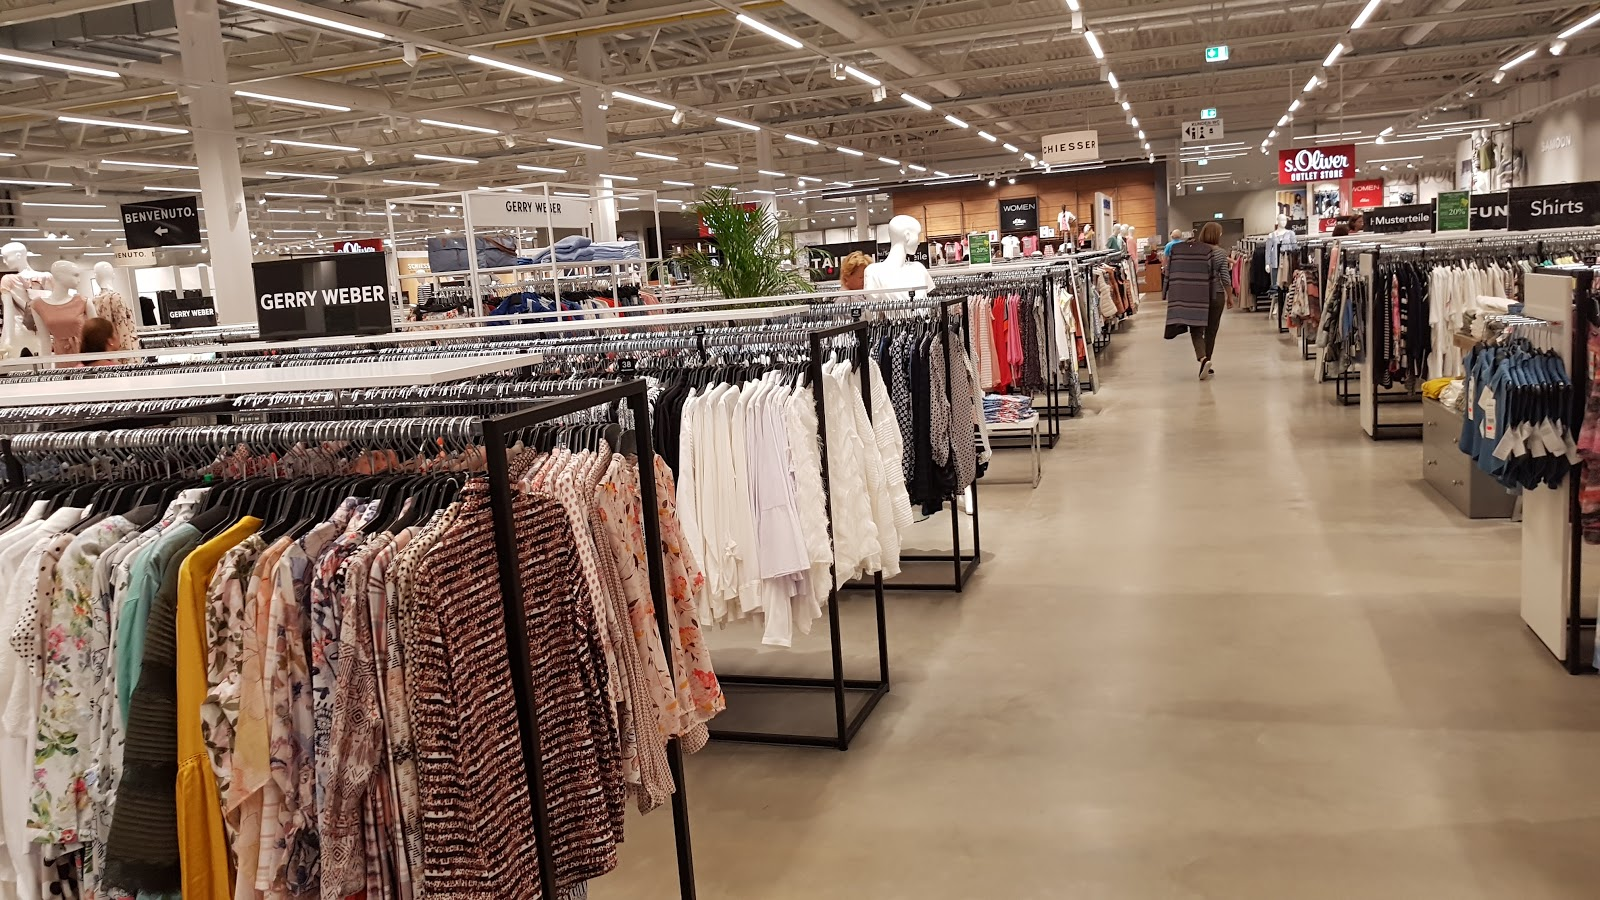 outlet halle gerry weber